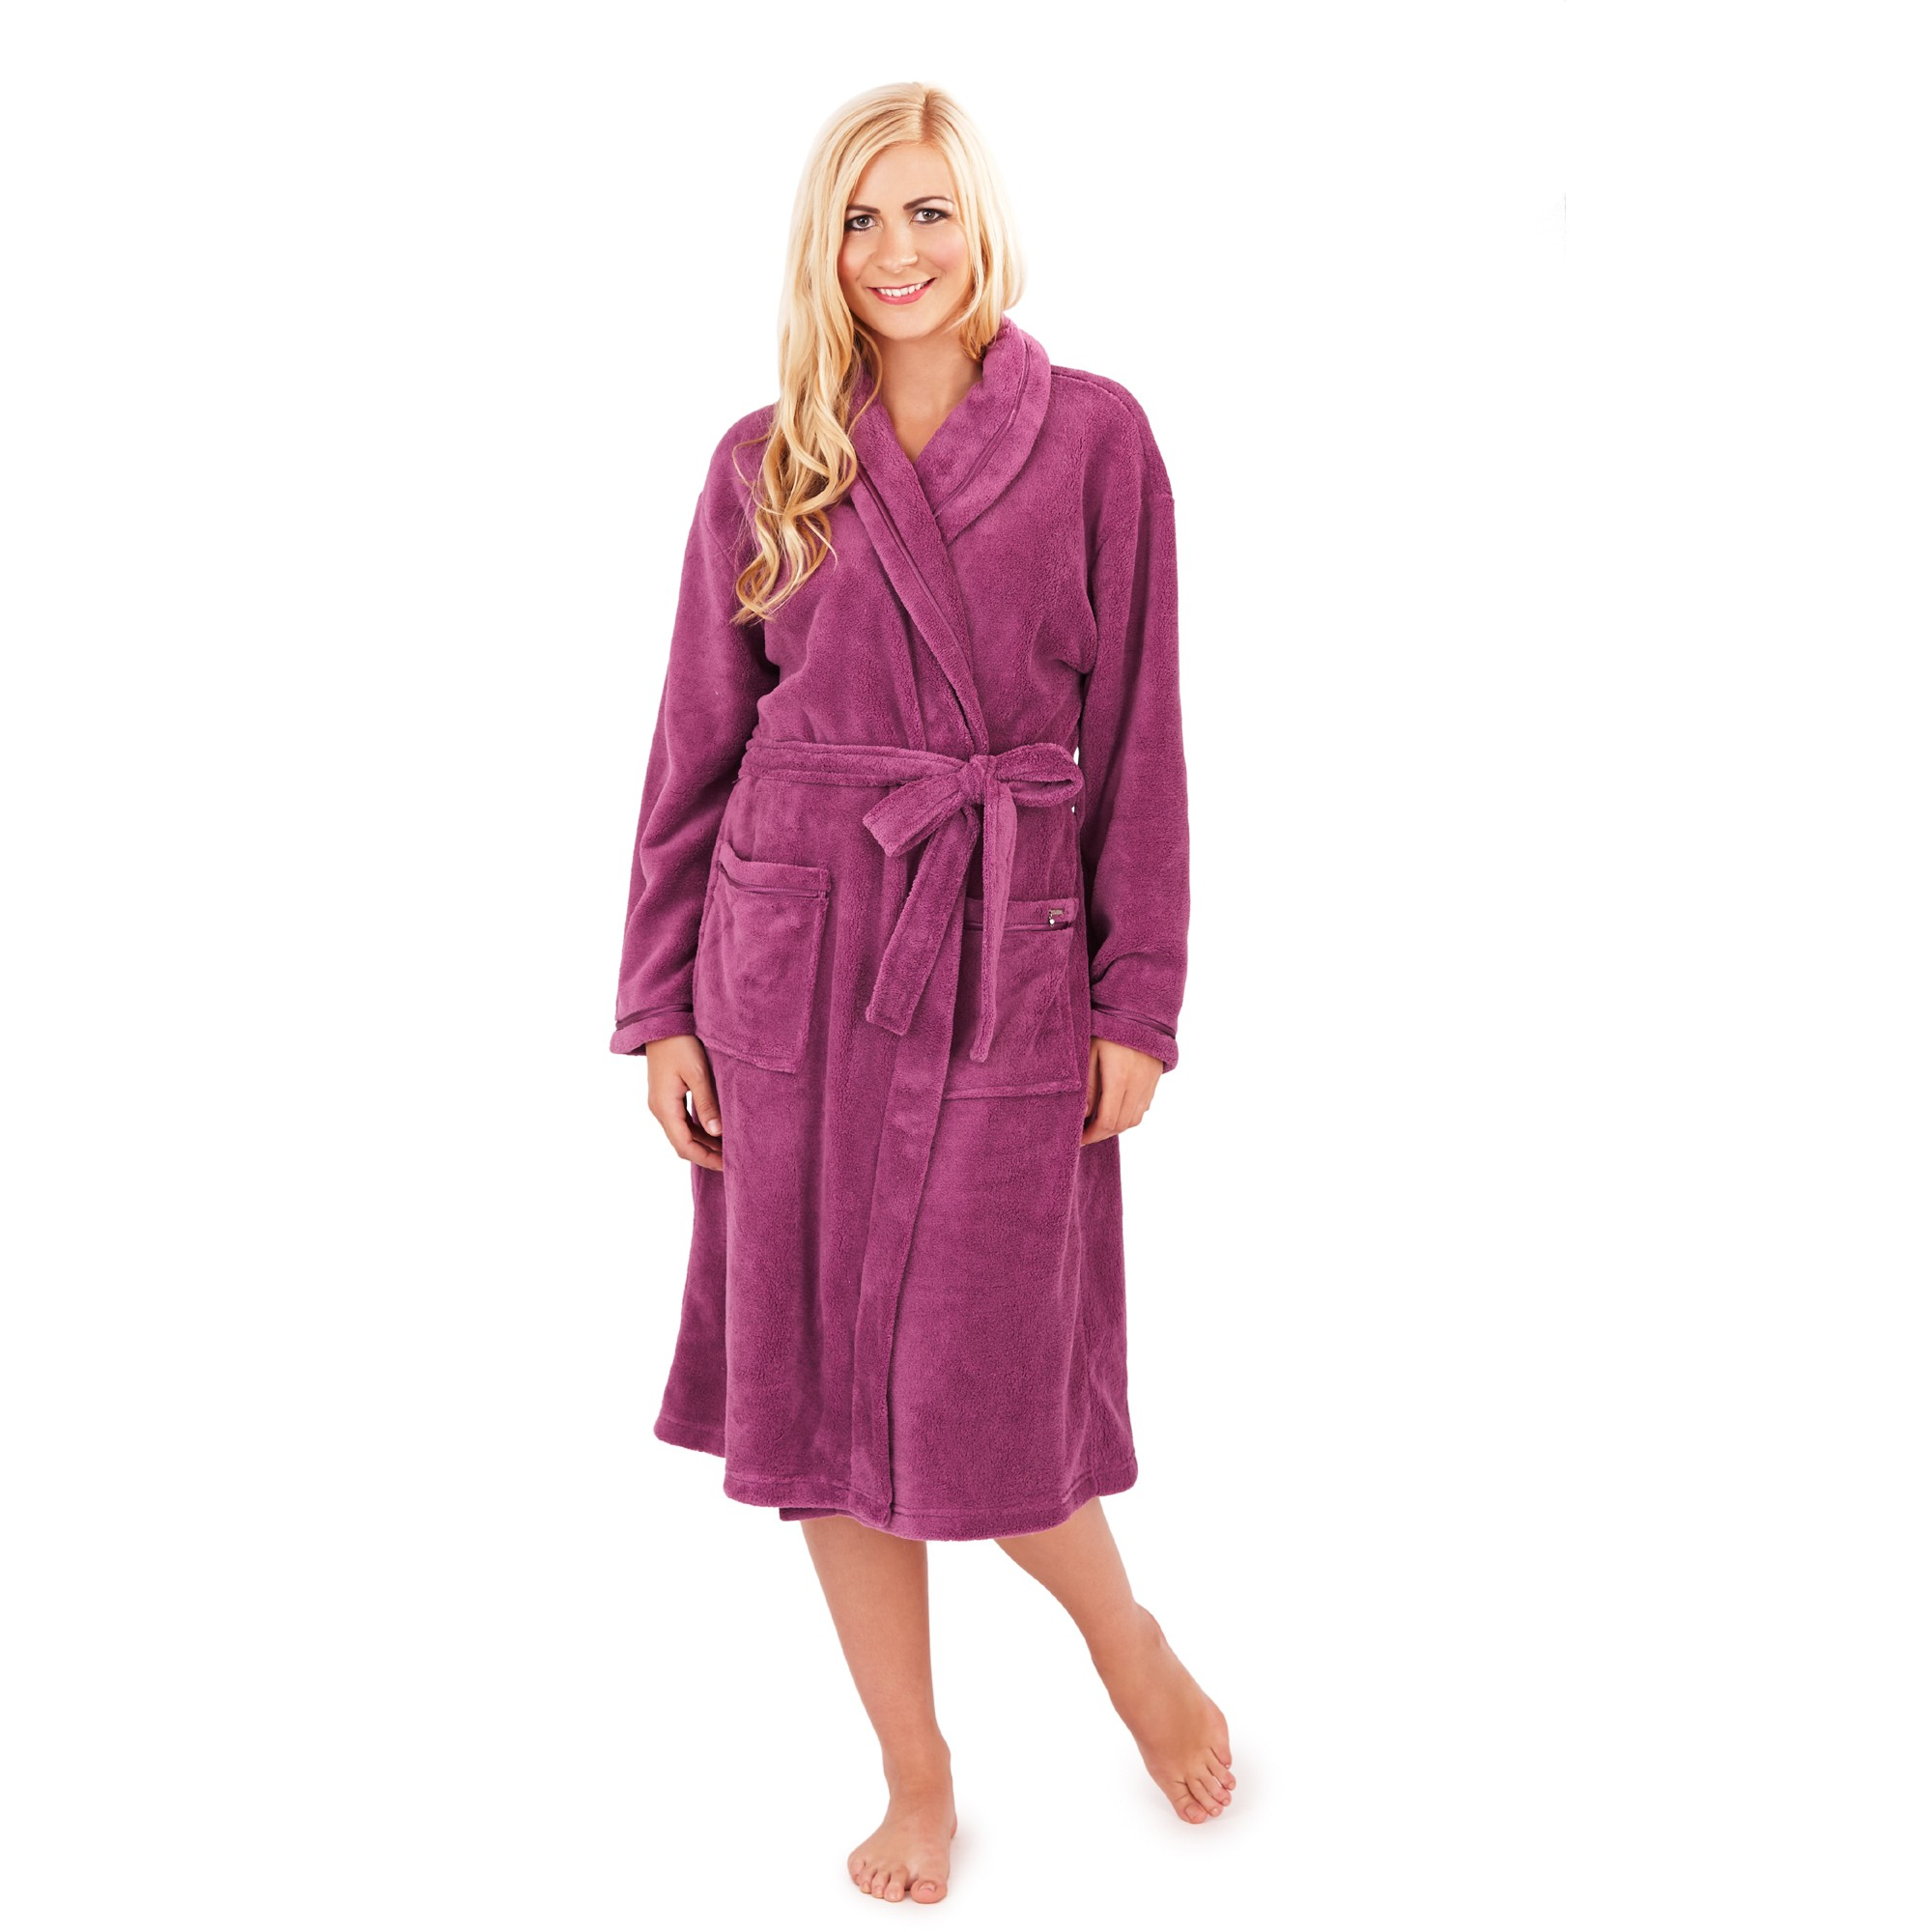 Ladies Super Soft Fleece Dressing Gown - Berry